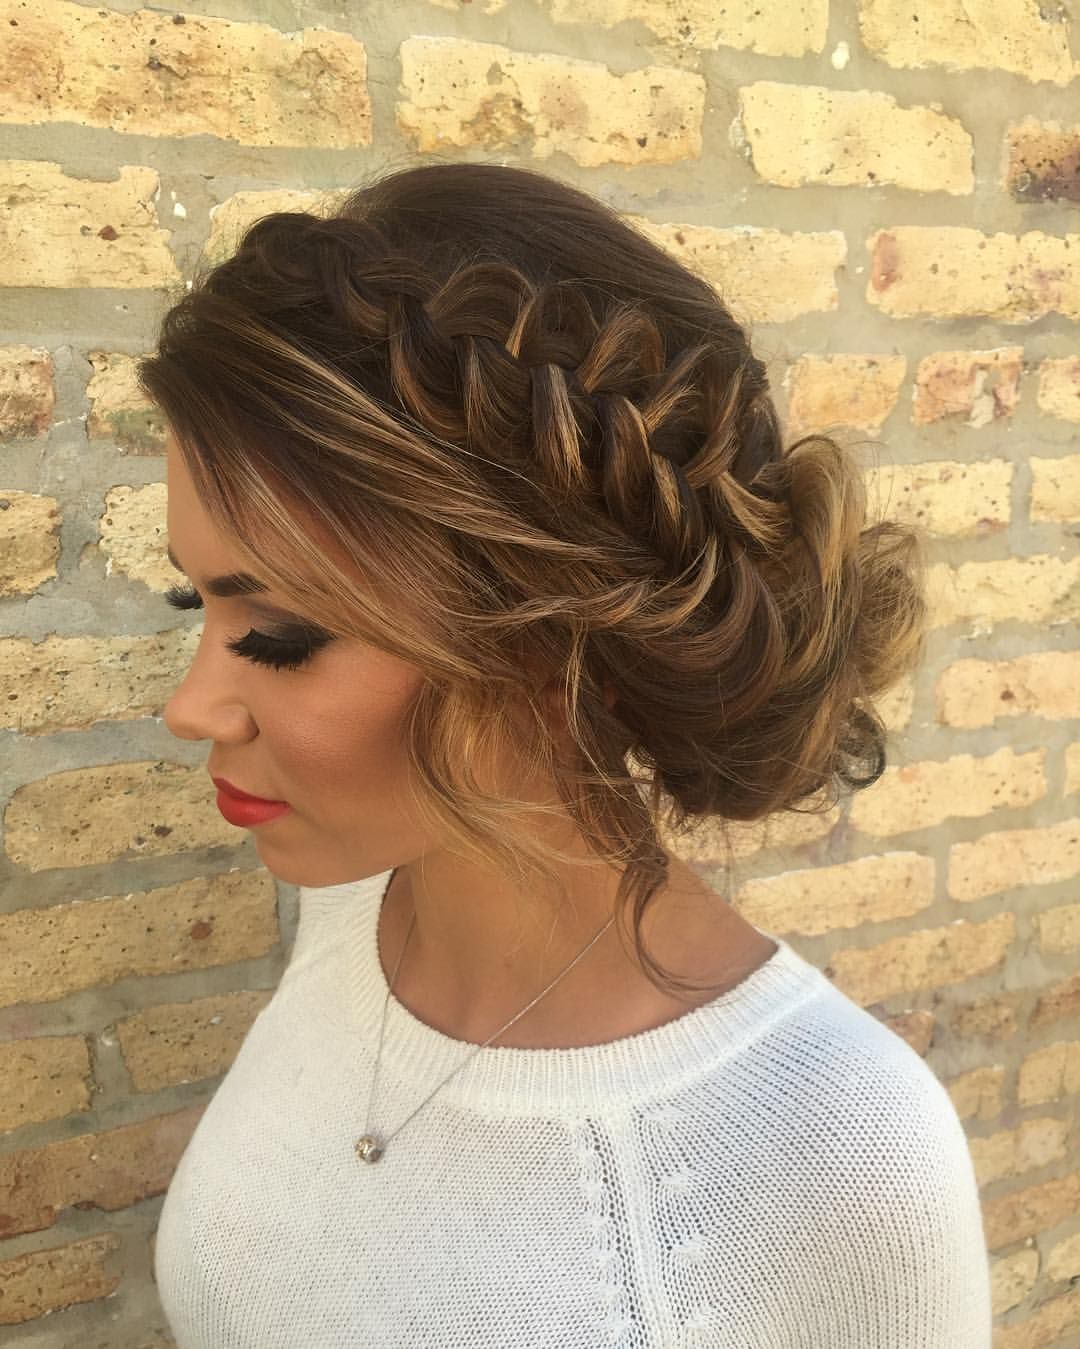 Lovely Braided Updo Classic Vintage Wedding Hairstyle Vintage Hairstyles Hair Styles Simple Prom Hair